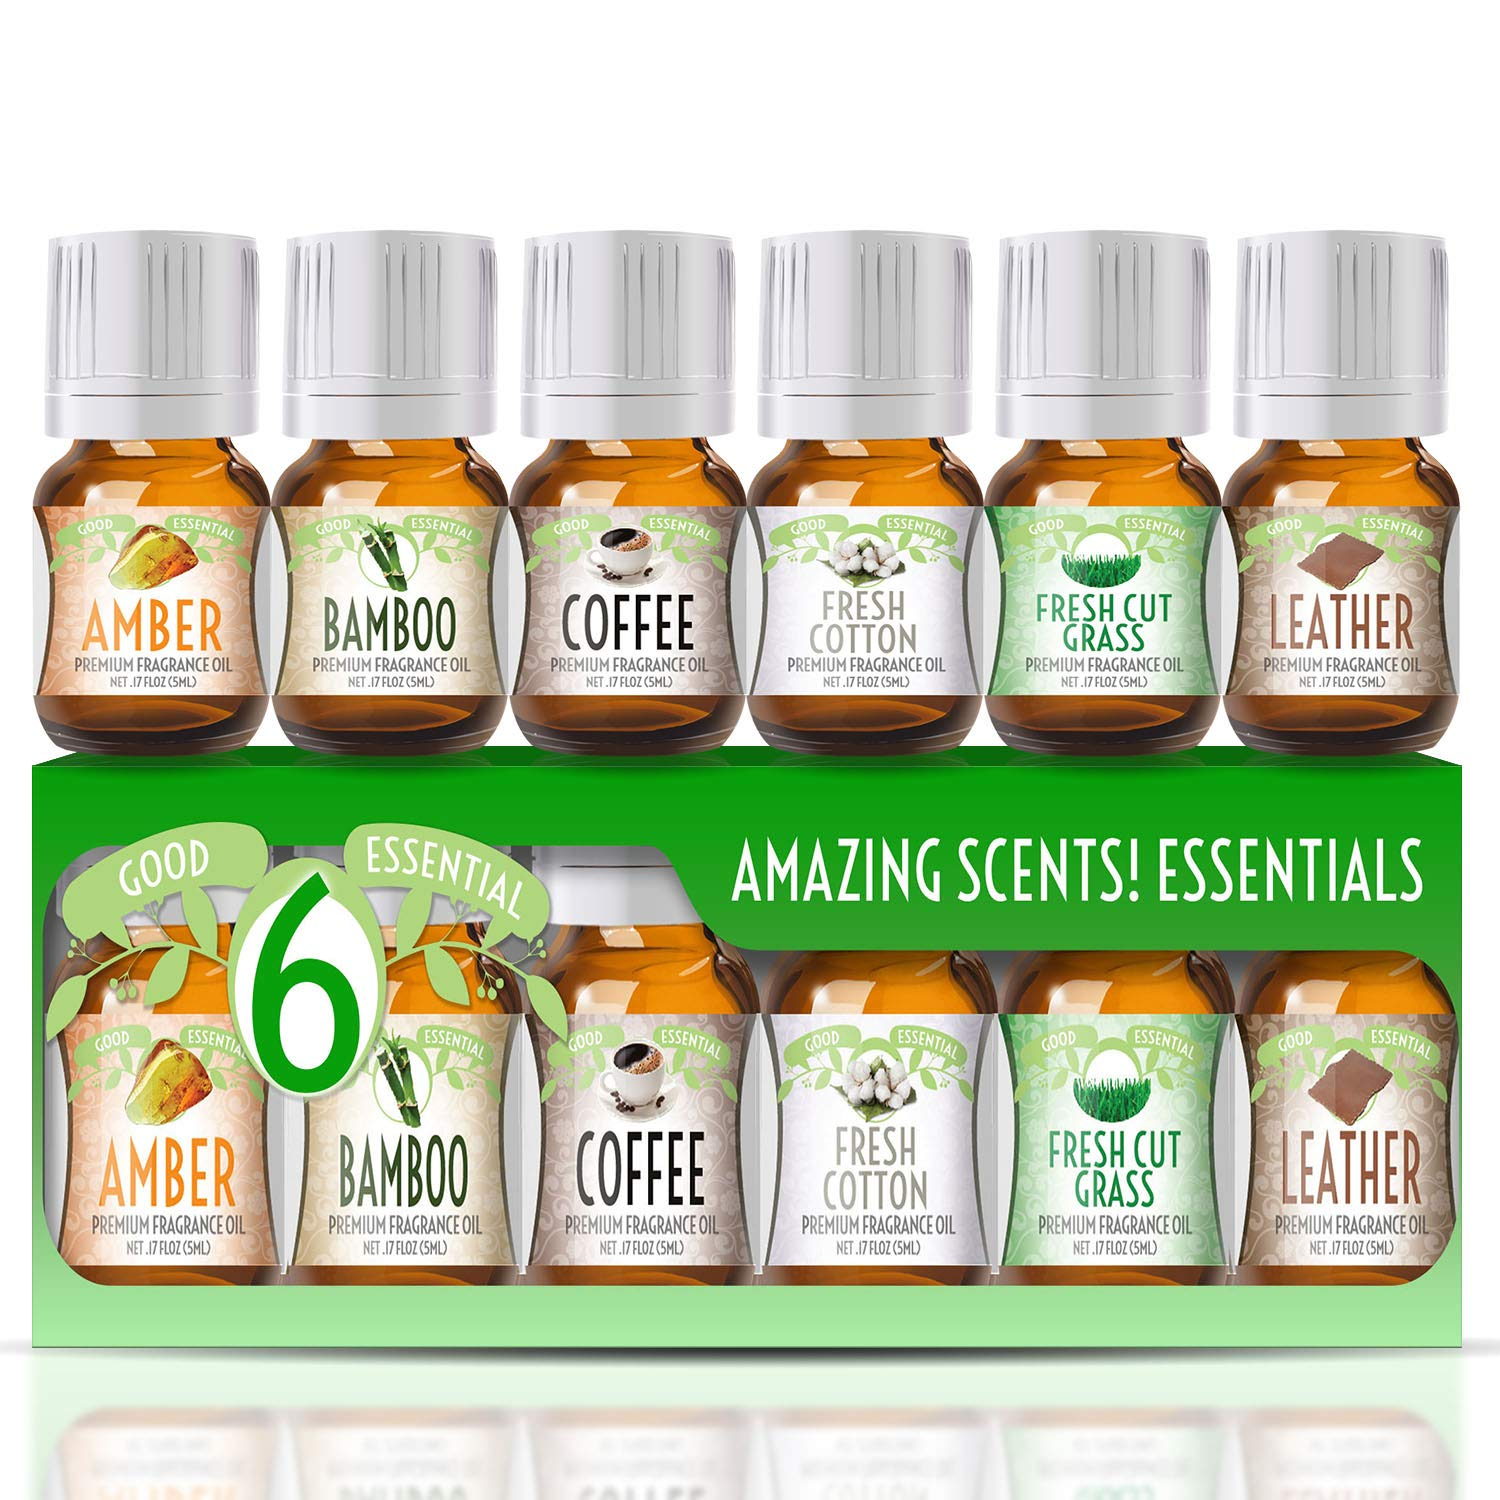 Fragrance Oils Set of 6 Scented Oils from Good Essential - Amber Oil, Coffee Oil, Leather Oil, Fresh Cotton Oil, Fresh Cut Grass Oil, Bamboo Oil: Aromatherapy, Perfume, Soaps, Candles, Slime, Lotions!